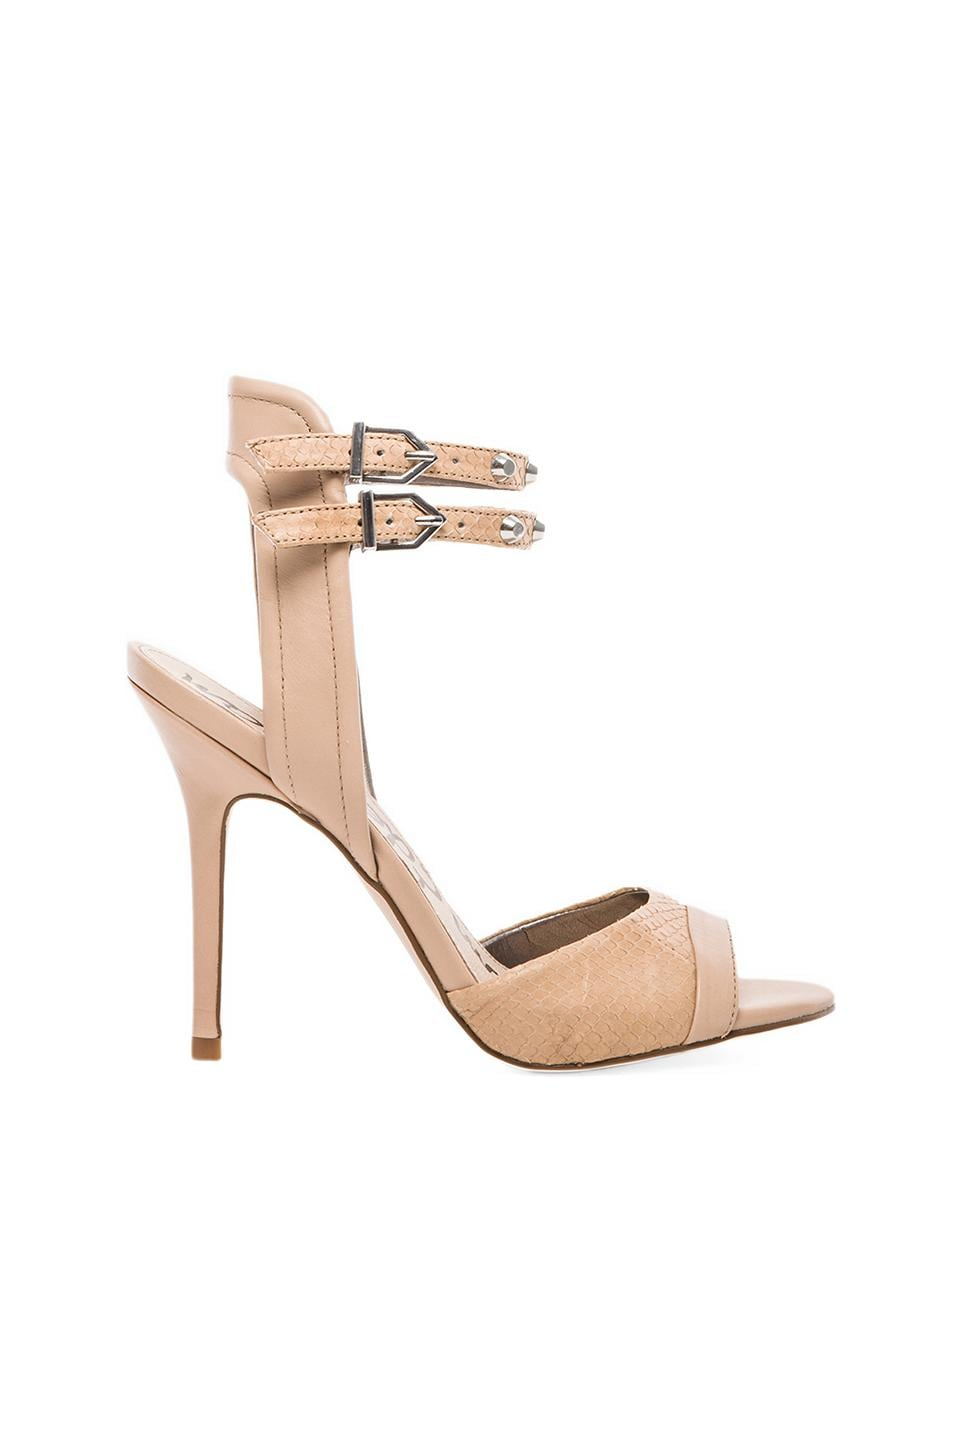 Sam Edelman Ayda Heel in Buff Nude